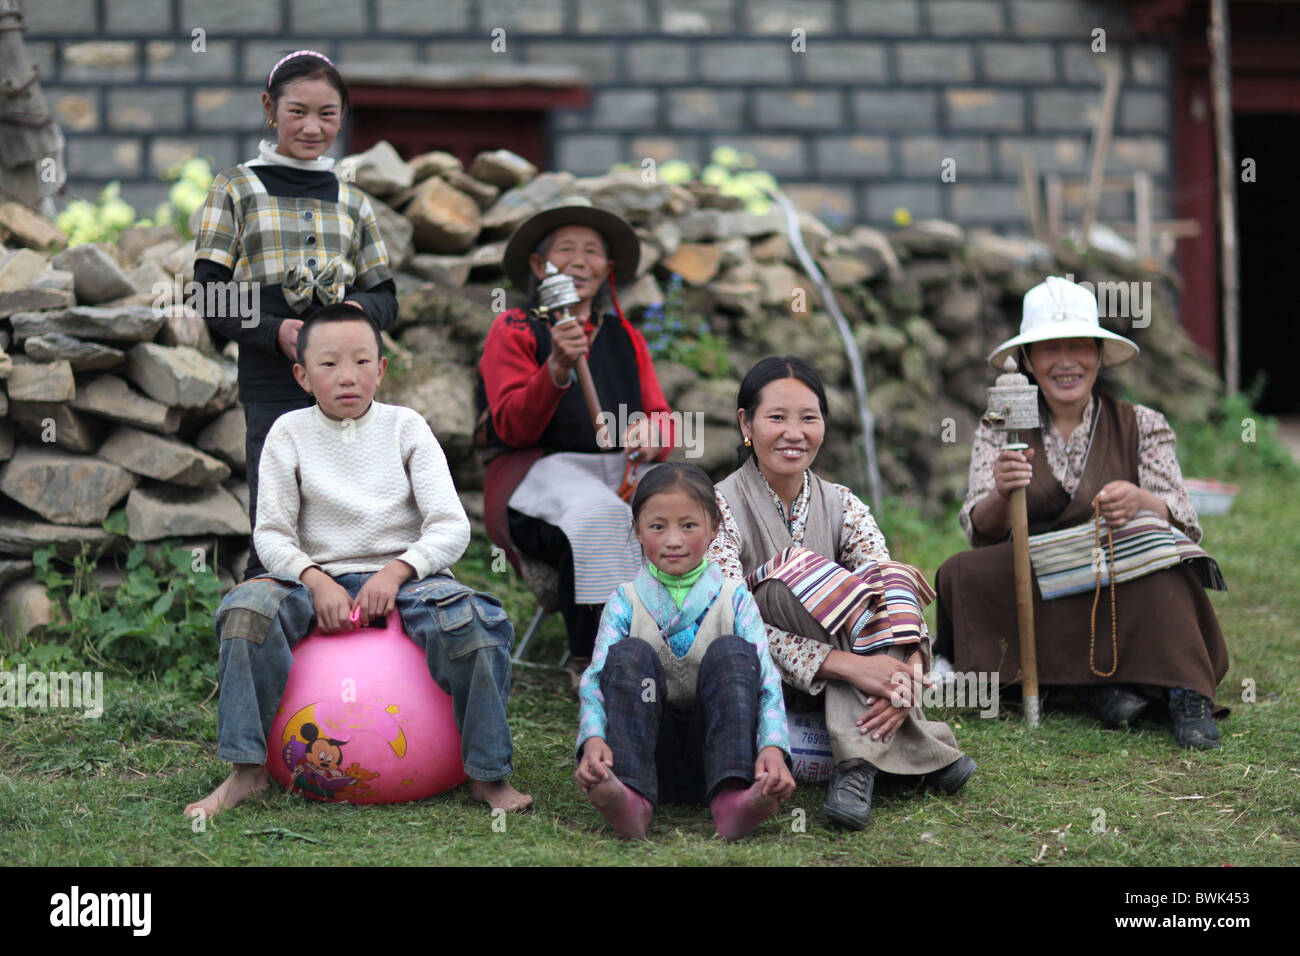 A traditional tibetan family pose for a photo in Litang, Sichuan province, southwest China - Stock Image